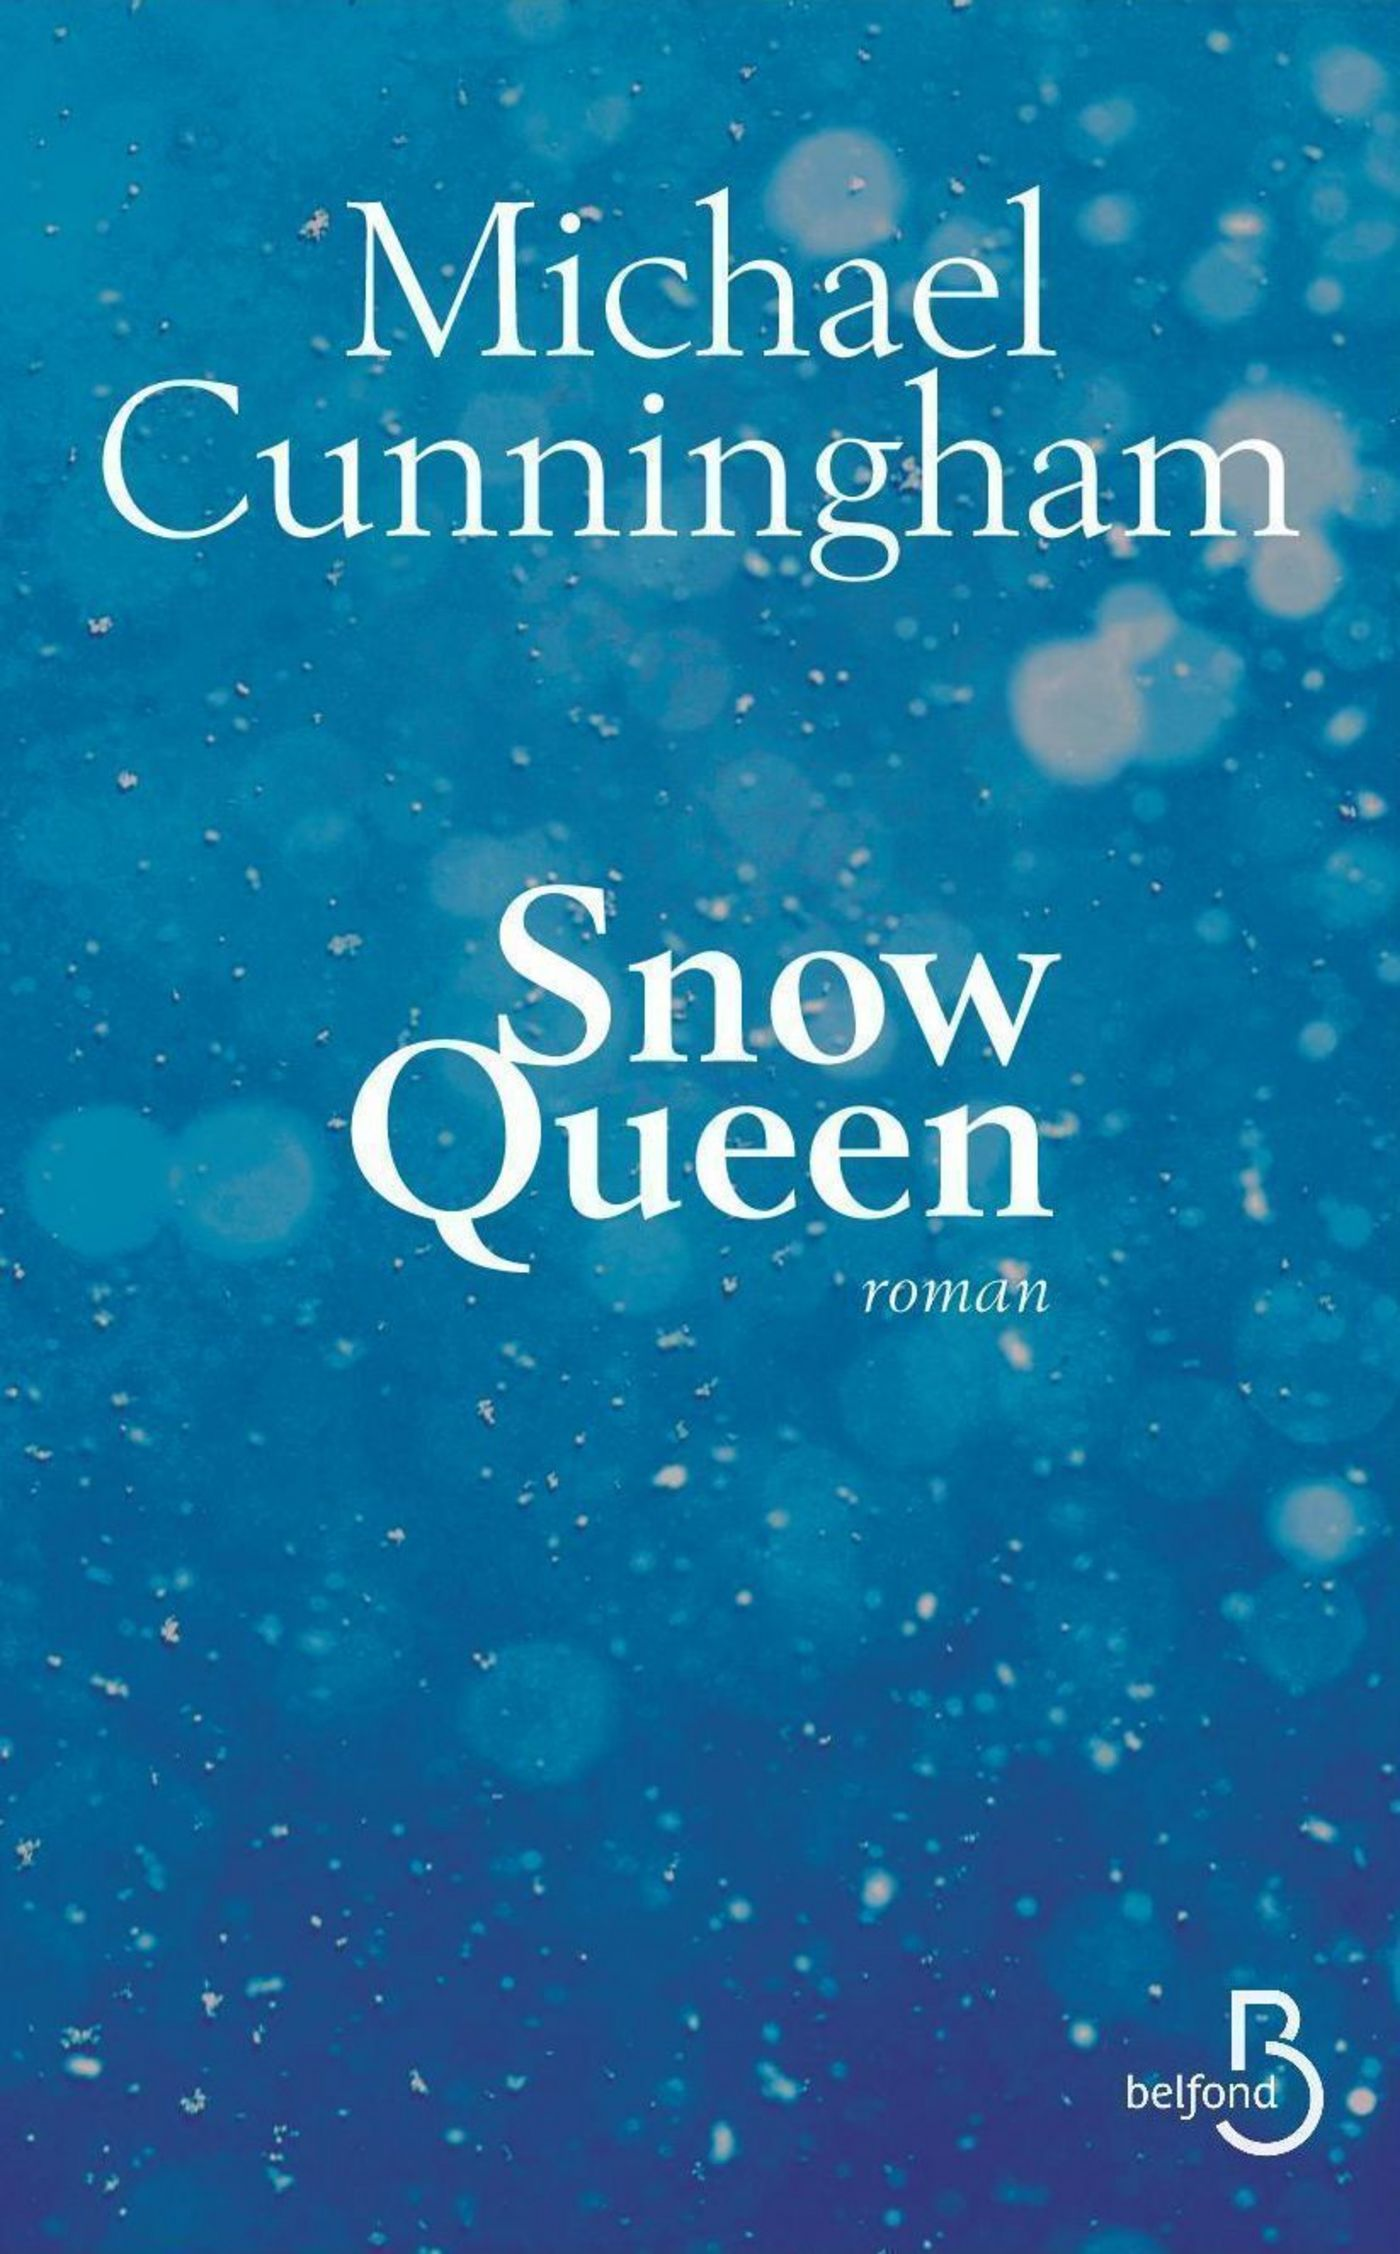 the importance of complex characters and relationships in the snow queen by michael cunningham Ohioan michael cunningham produced two well-received early novels kirkus reviews issue by michael cunningham fiction the snow queen by michael cunningham.